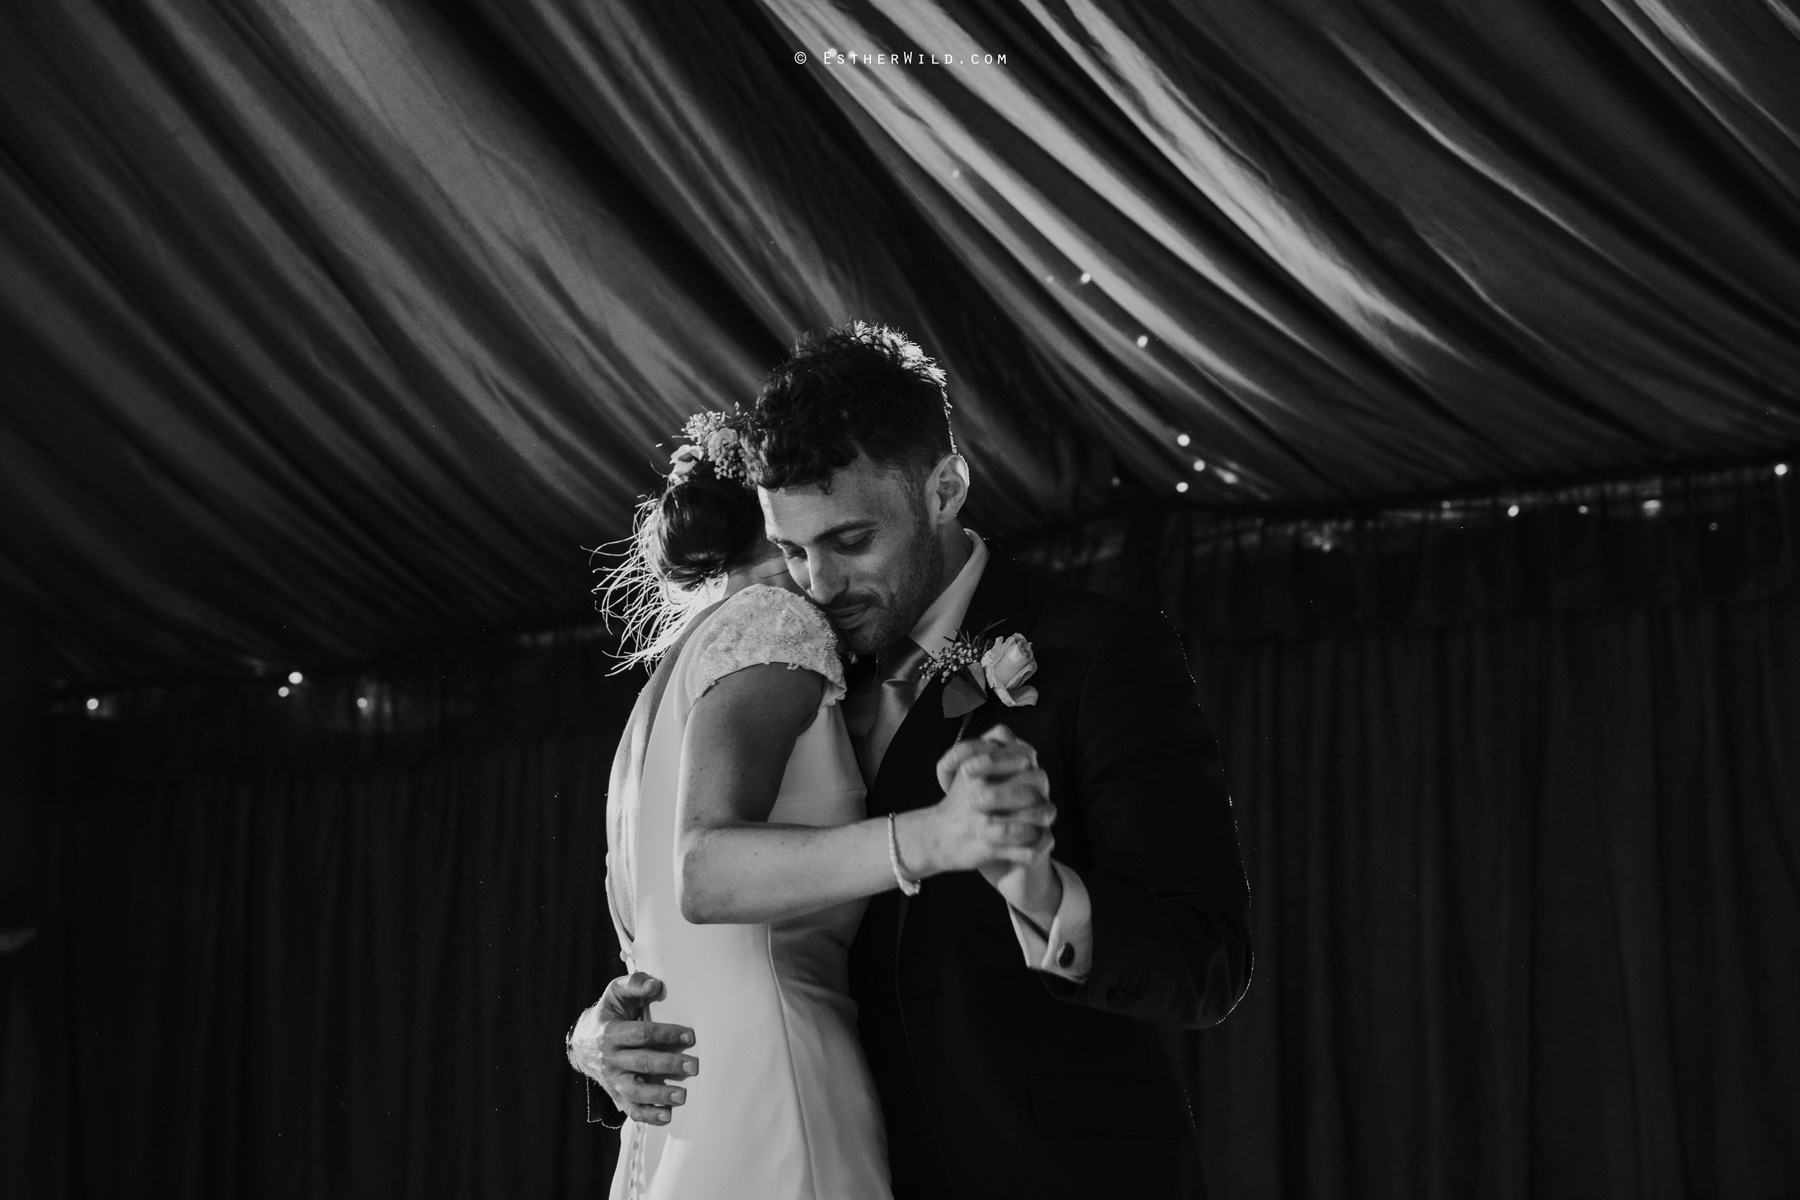 Wootton_Wedding_Copyright_Esther_Wild_Photographer_IMG_3184.jpg